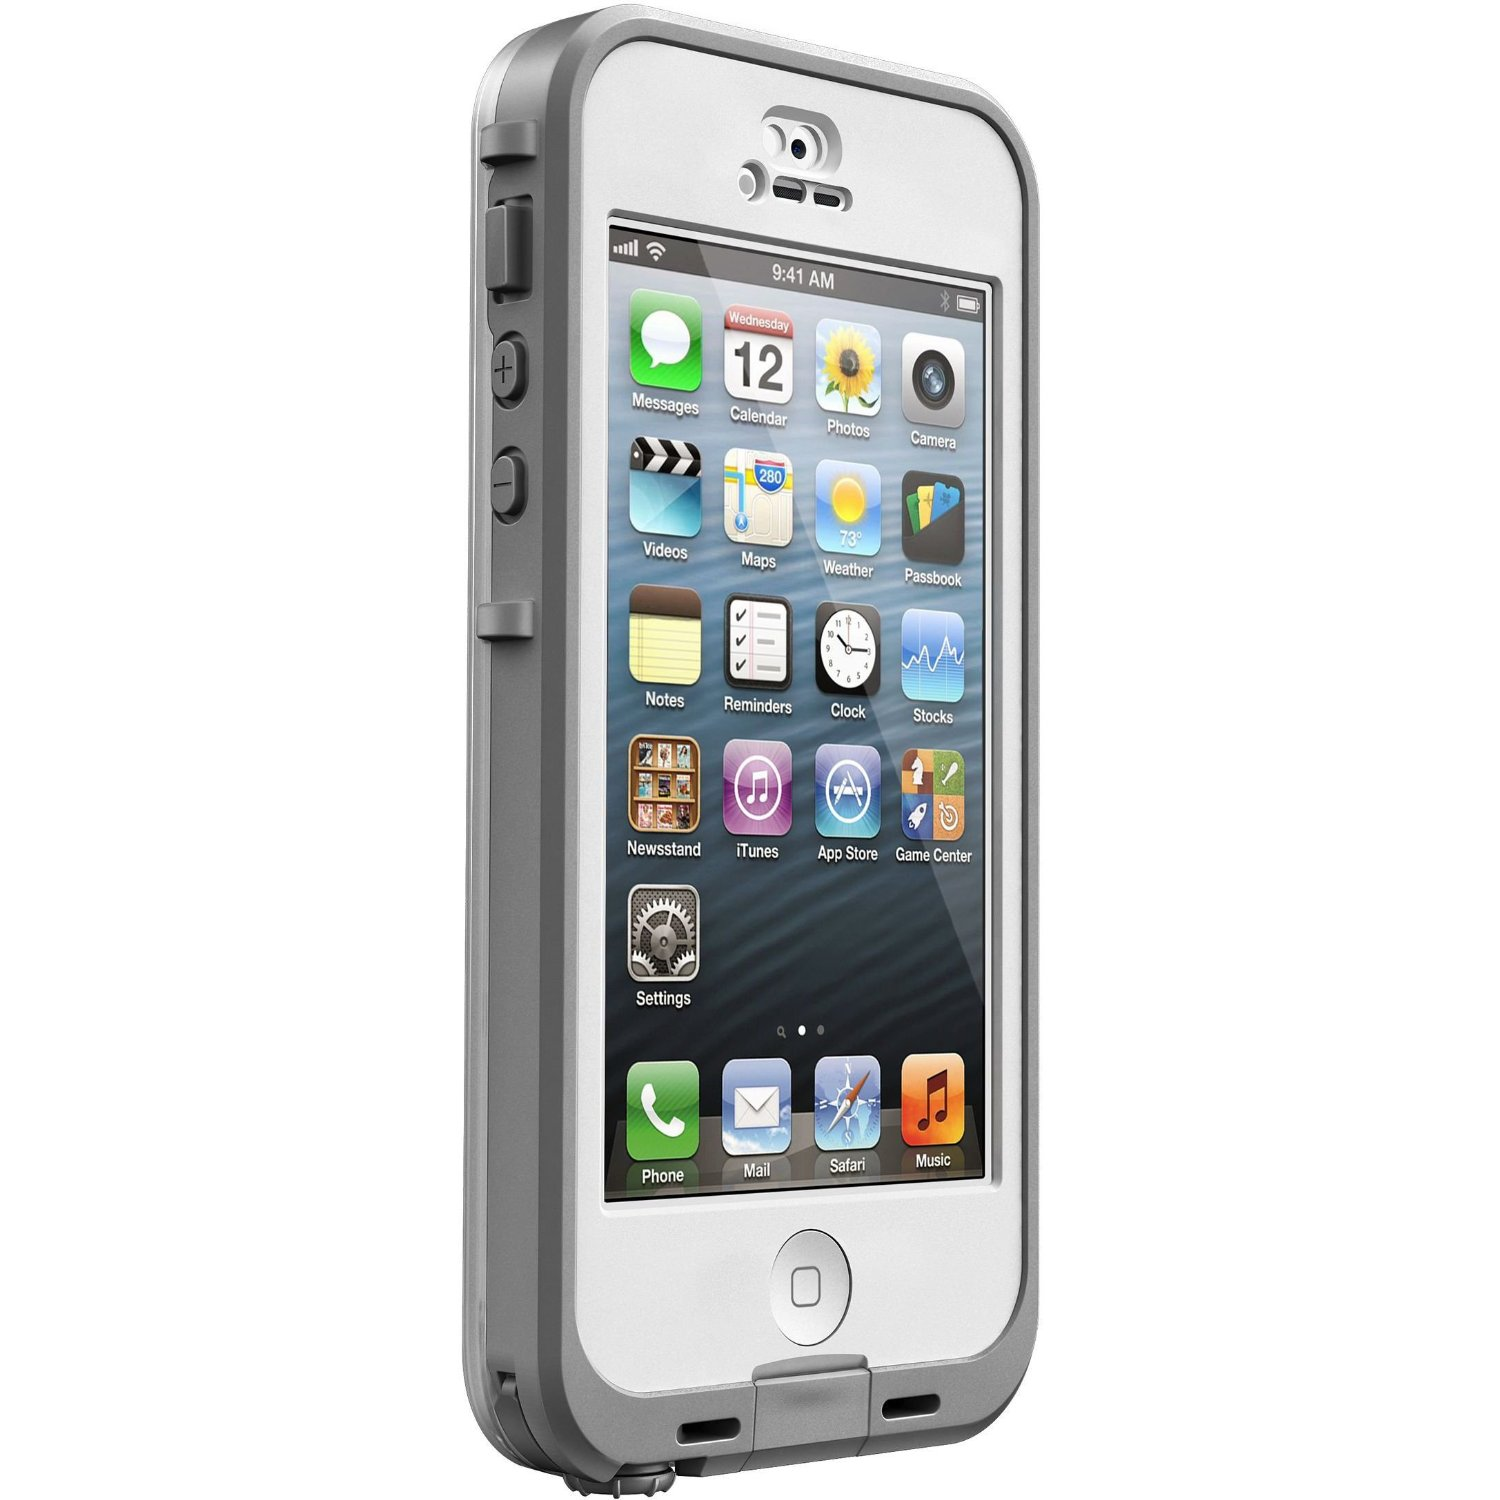 Lifeproof wants to help you get the best deal on protective gear. In addition to saving money with LifeProof promo codes to free shipping promos, you can use these tips to get quality, adventure-worthy phone cases and other equipment for less.. Save Money with LifeProof Promo Codes.